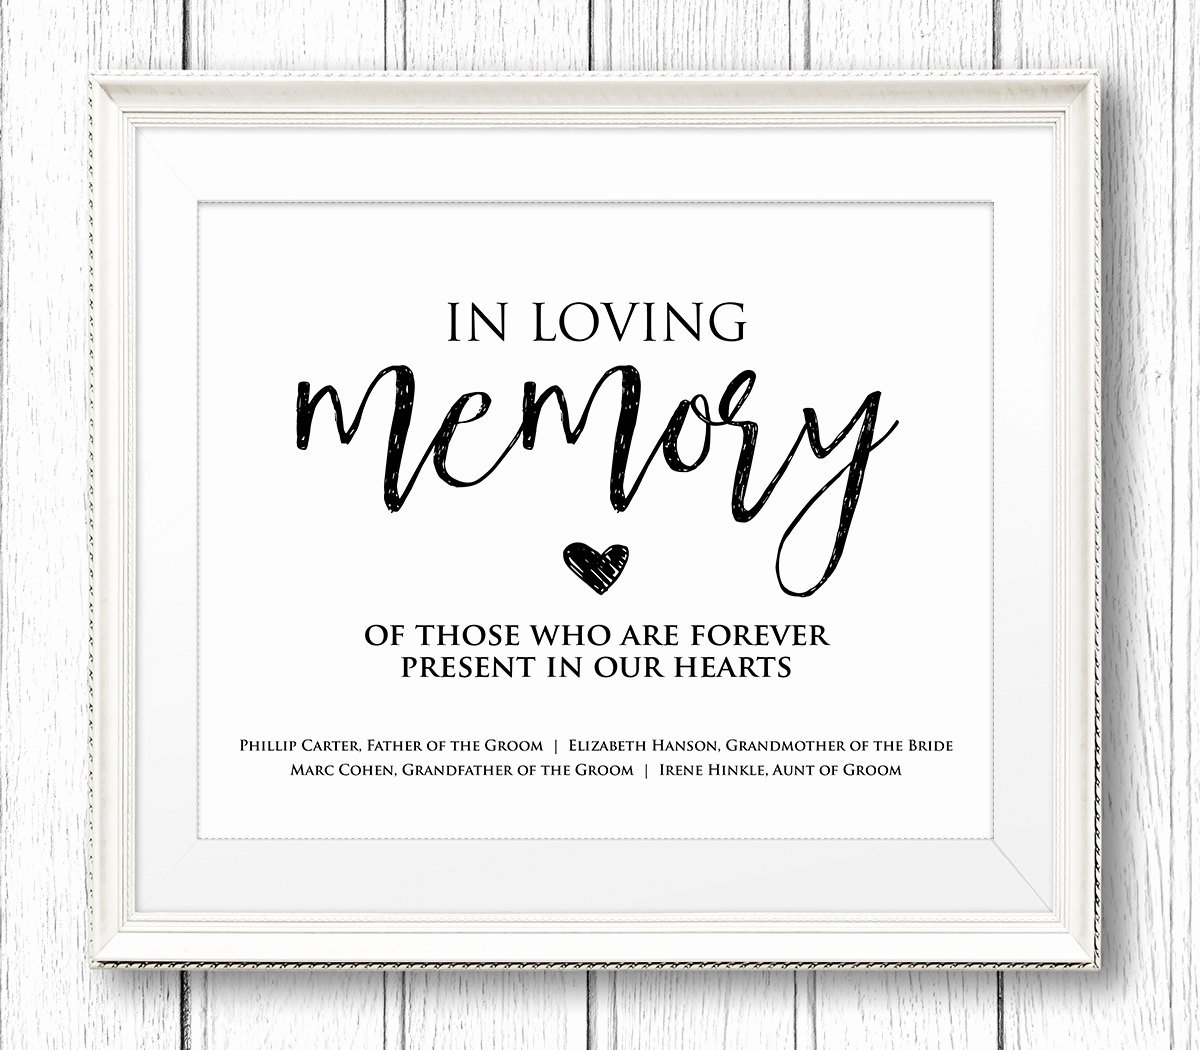 In Loving Memory Template Unique In Loving Memory Wedding Sign Editable Text Personalize